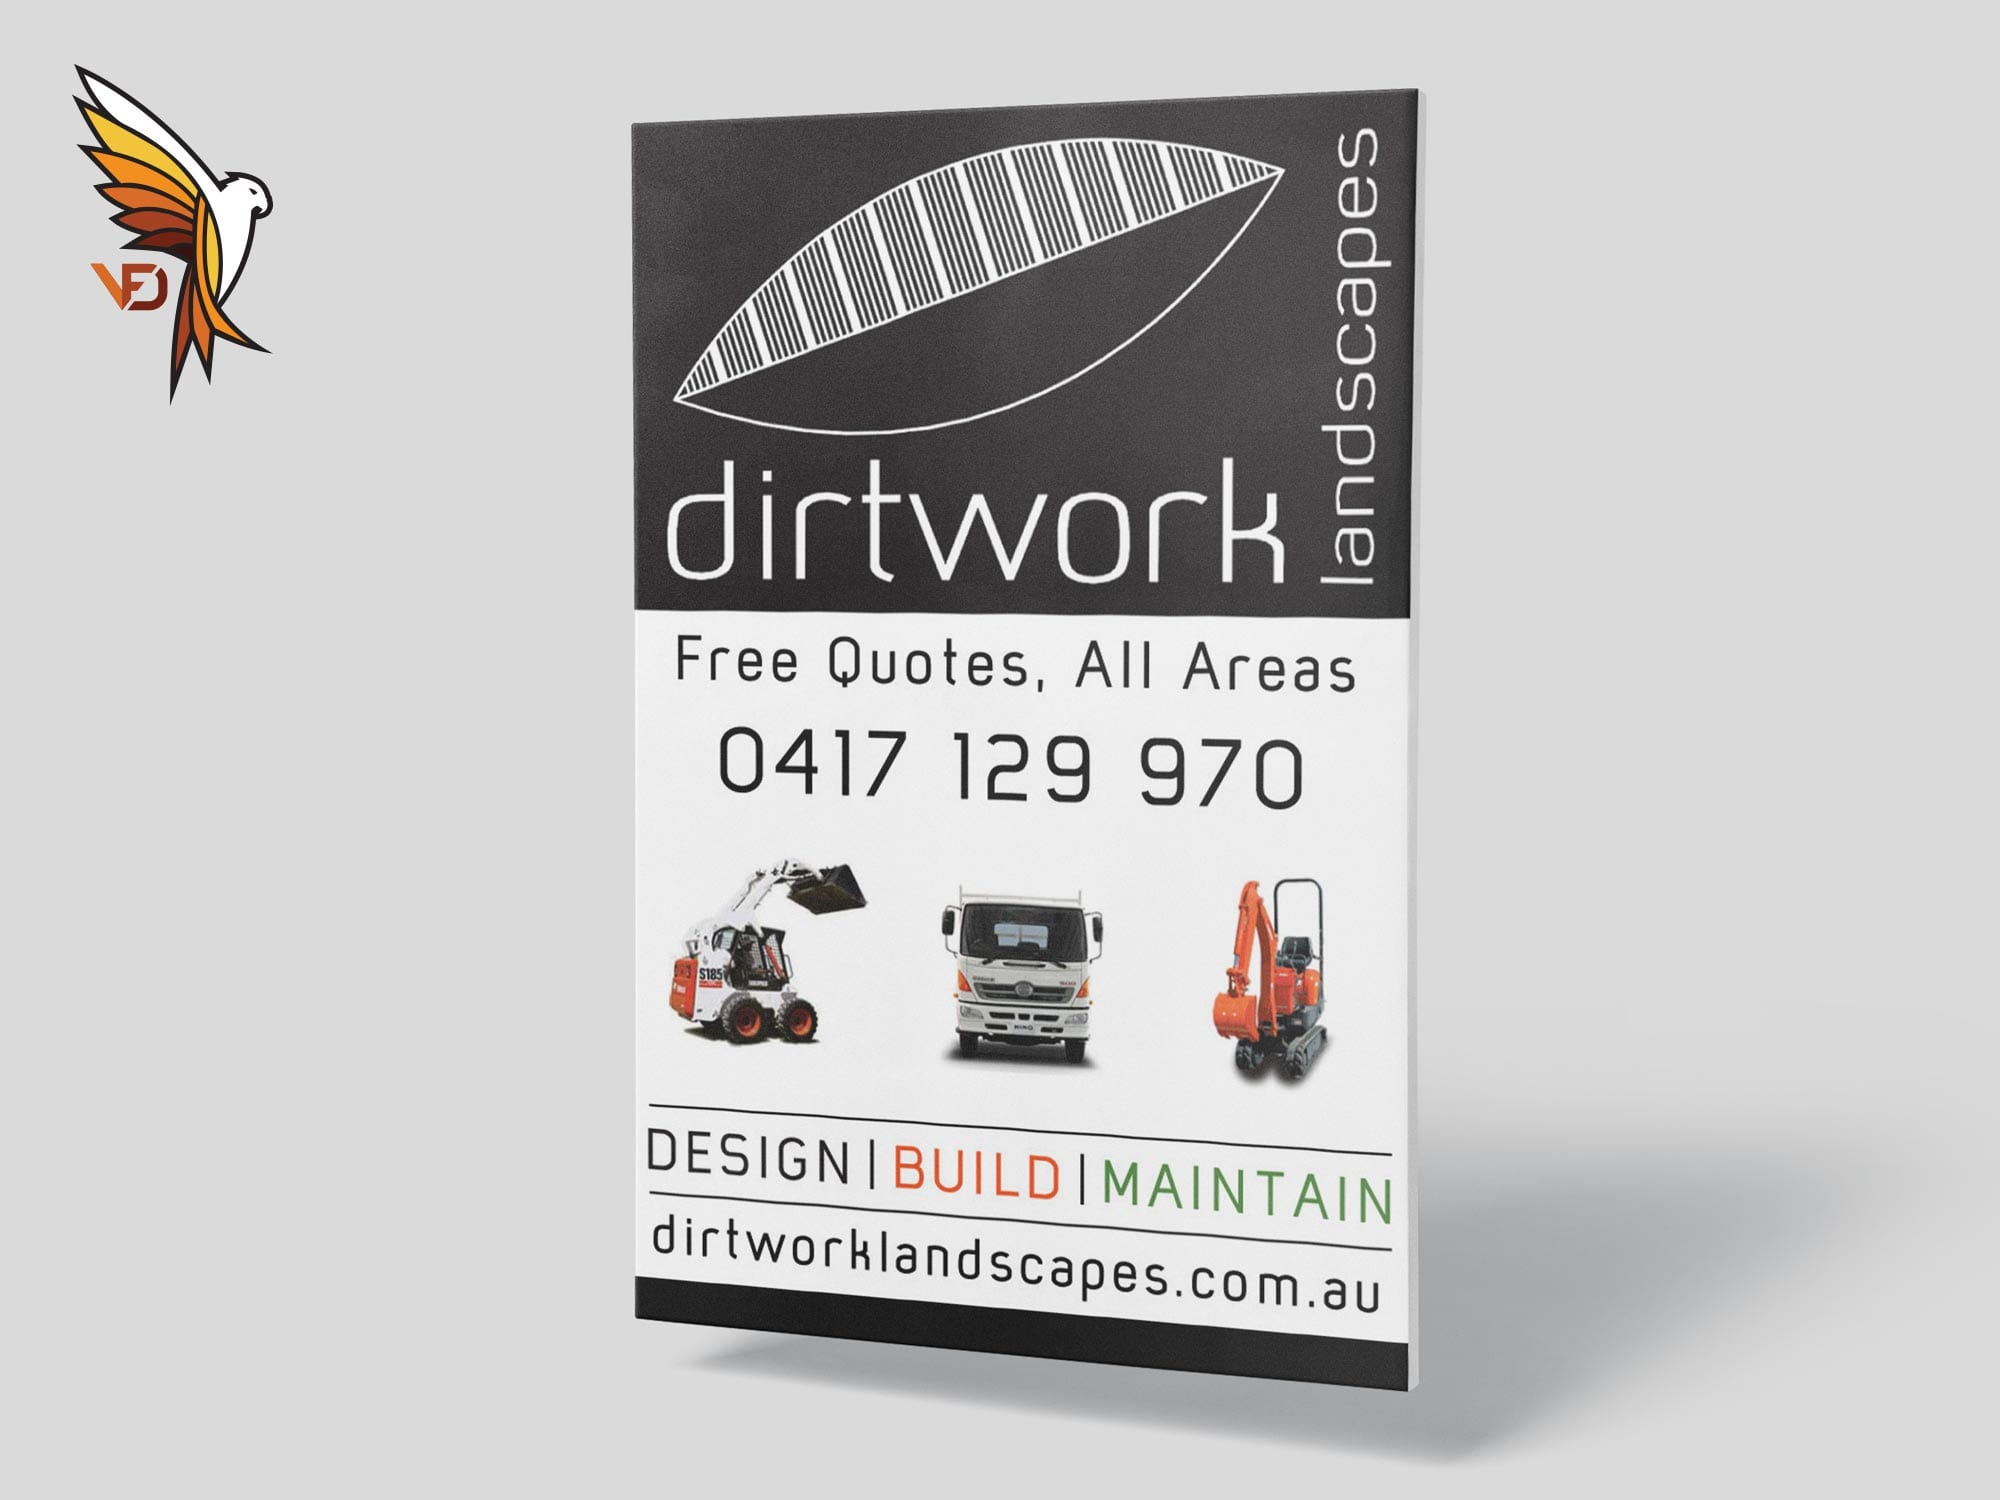 Dirtwork Landscapes - Pull Up Banner